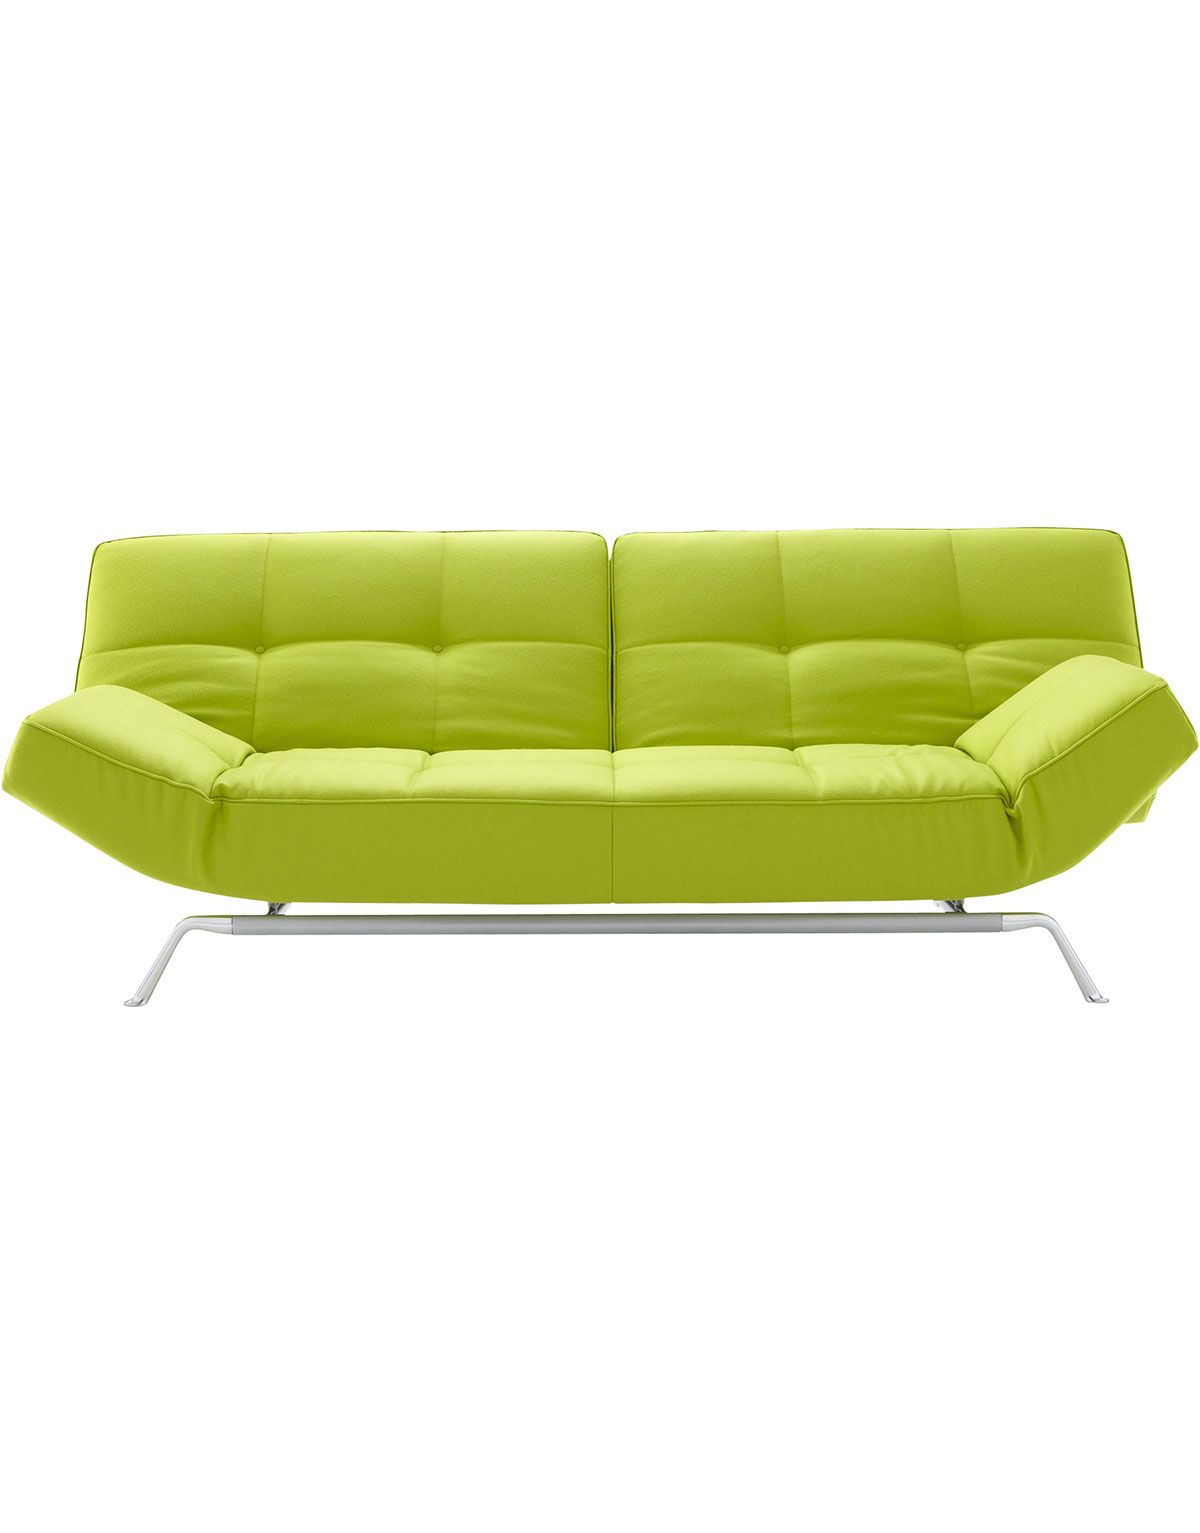 Smala sofa designed by Pascal Mourgue for Ligne Roset | Available at ...